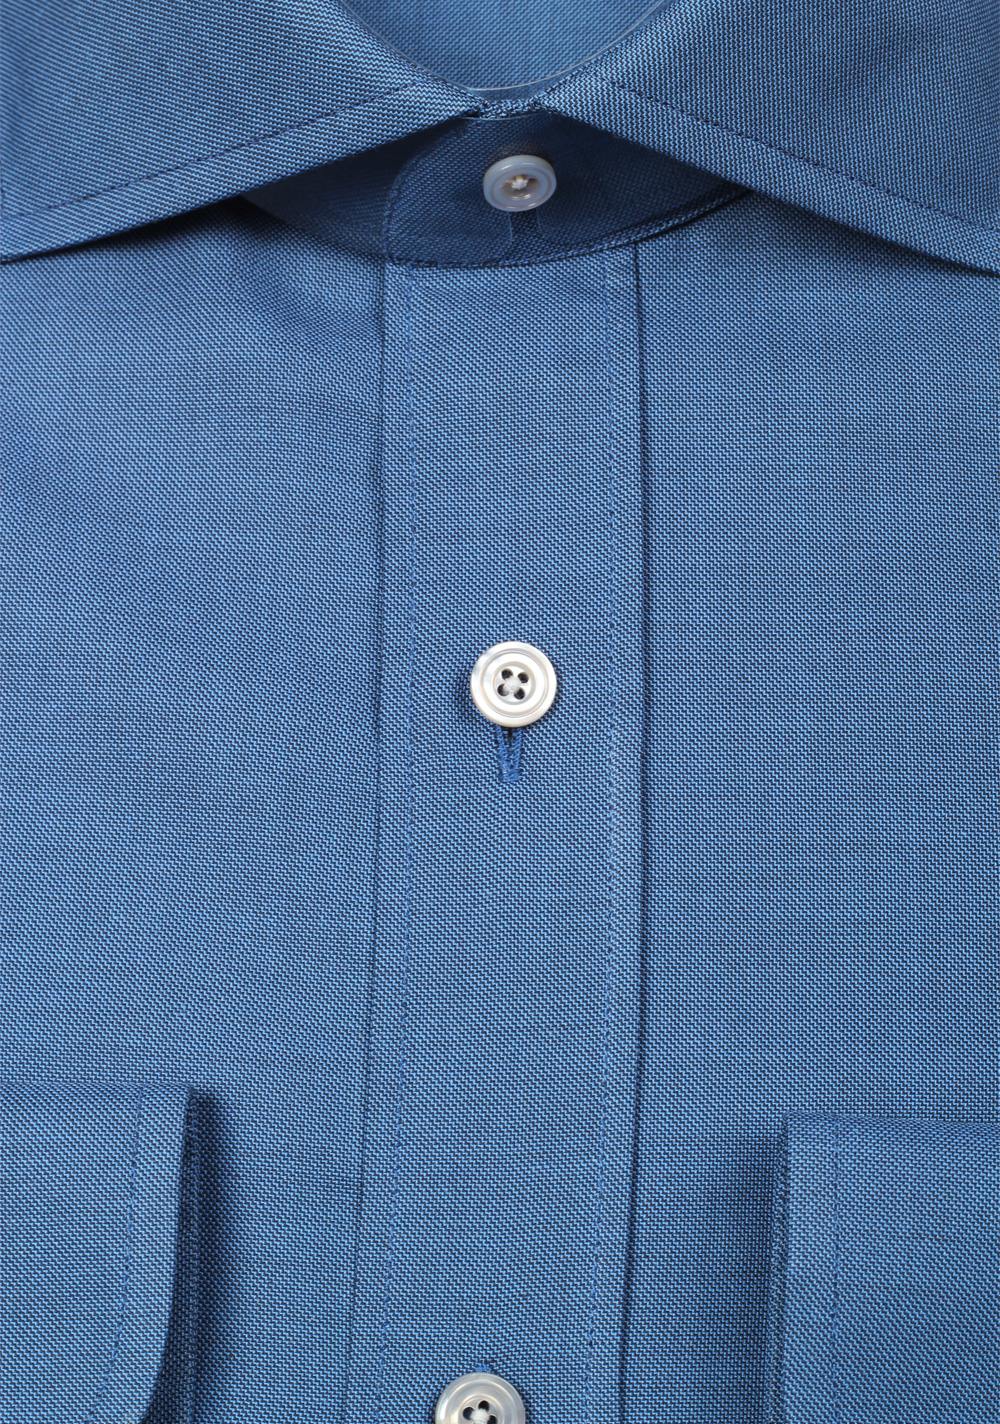 New Tom Ford Solid Blue Dress Shirt Size 45 18 Us 8719882014556